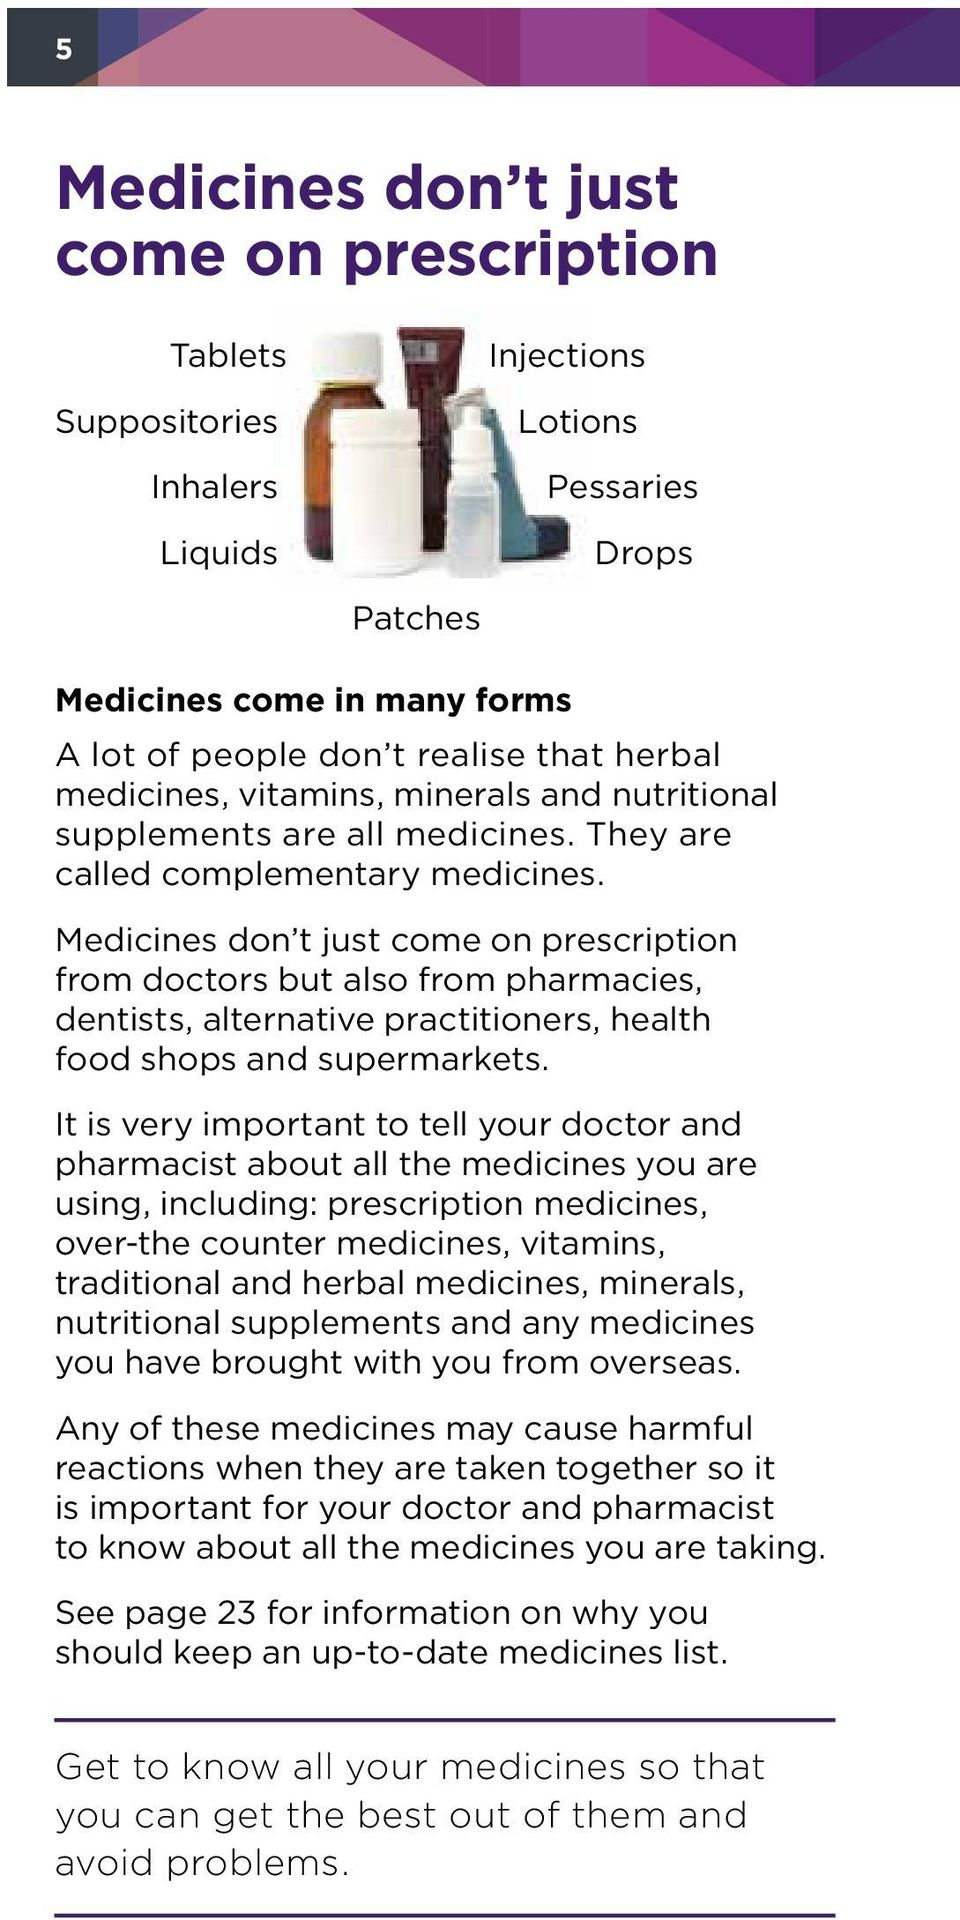 Medicines don t just come on prescription from doctors but also from pharmacies, dentists, alternative practitioners, health food shops and supermarkets.